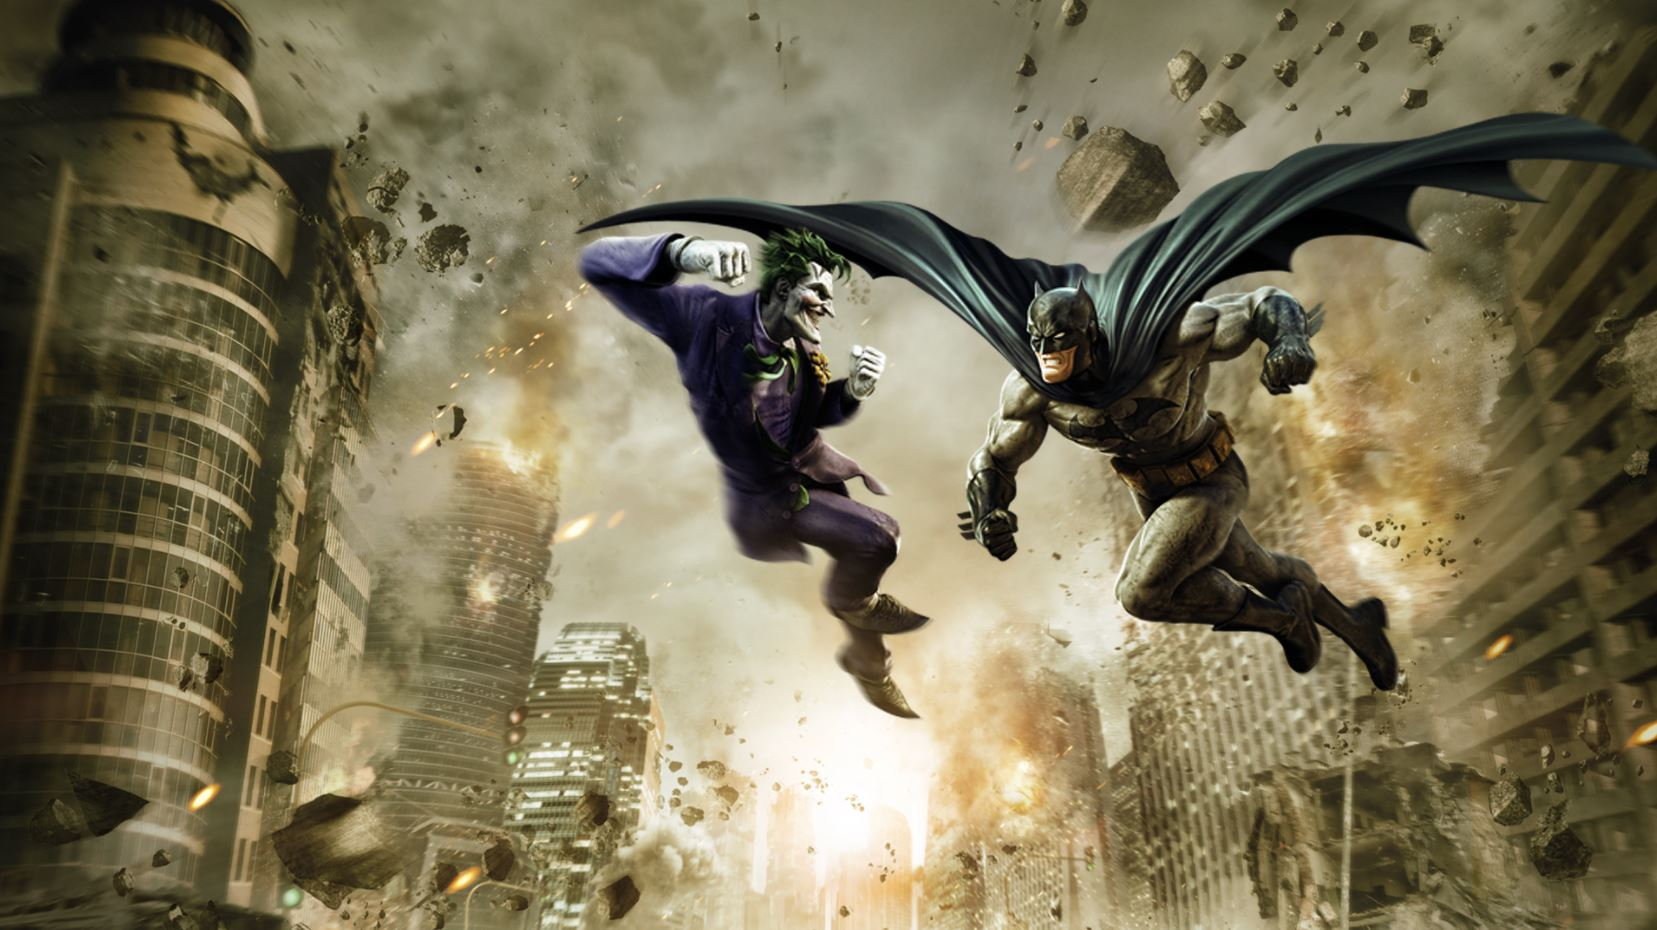 dc-universe-online-ps5-release-coming-later-this-year-to-celebrate-10th-anniversary